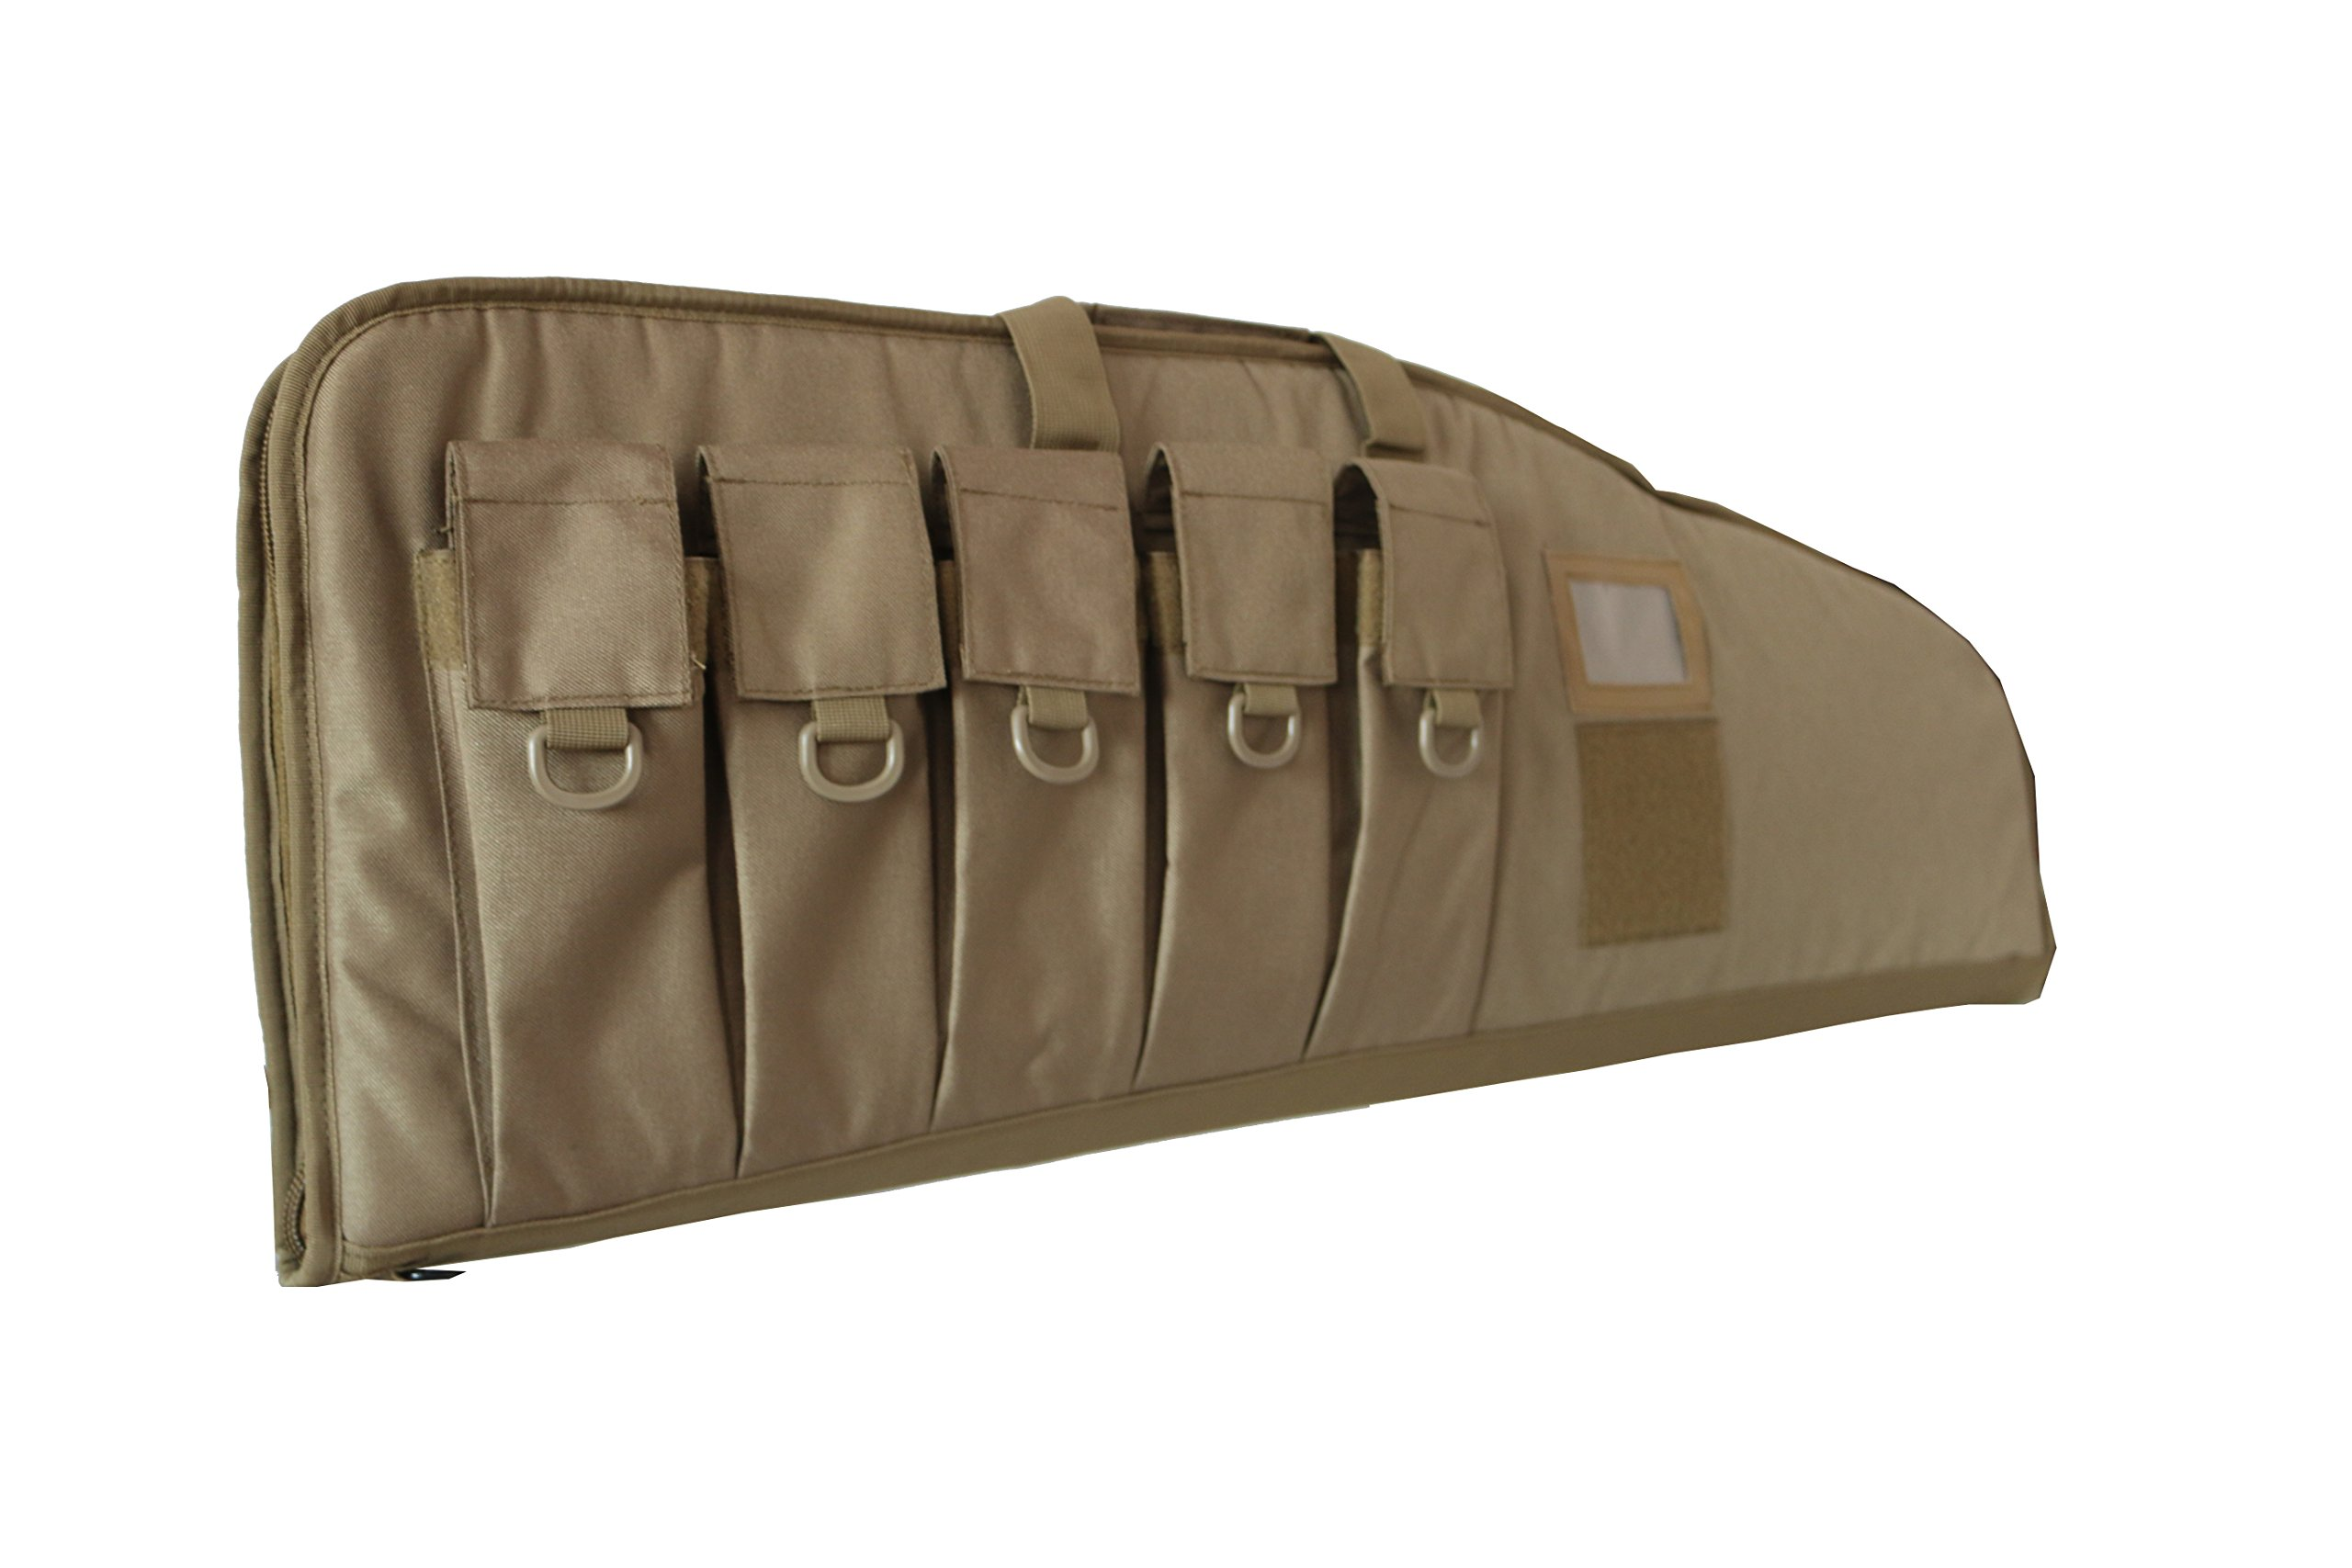 ARMYCAMOUSA Rifle Bag Outdoor Tactical Carbine Cases Water dust Resistant Long Gun Case Bag with Five Magazine Pouches for Hunting Shooting Range Sports Storage and Transport (42'' Tan) by ARMYCAMOUSA